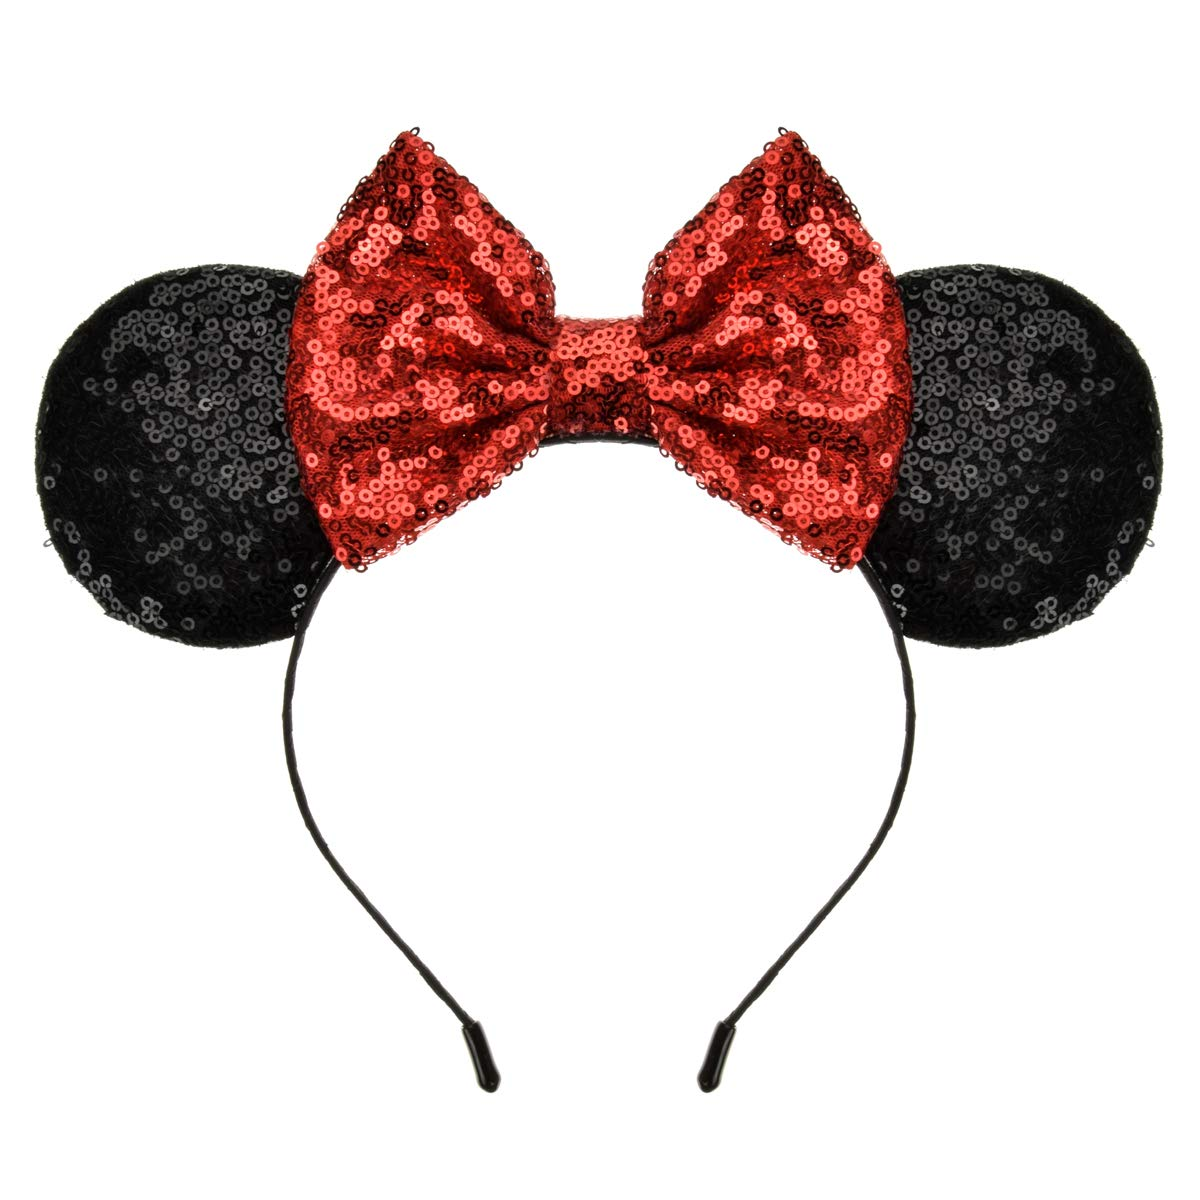 A Miaow Black Mouse Ears Headband MM Glitter Hair Hoop Girls Women Adults Butterfly Sequin Costum Hair Clasp Birthday Party Holiday Park Accessory  1 Black and Red